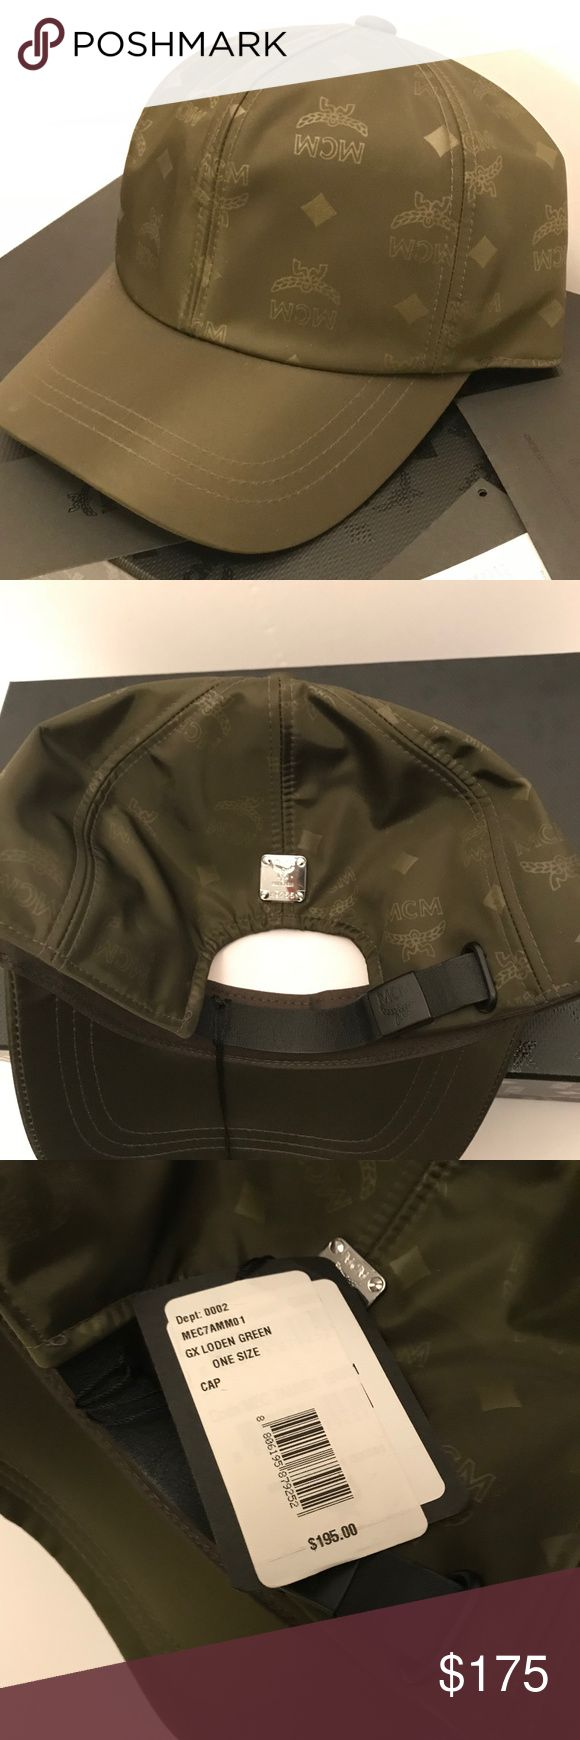 "Mcm dieter monogrammed nylon baseball cap hat new! 2.75"" brim Logo pattern Adjustable back Shell: nyon; lining: polyester/cotton; exclusive of decoration Imported  100% Authentic   comes with all original packaging. bag,warranty card,tags attached. MCM Accessories Hats"